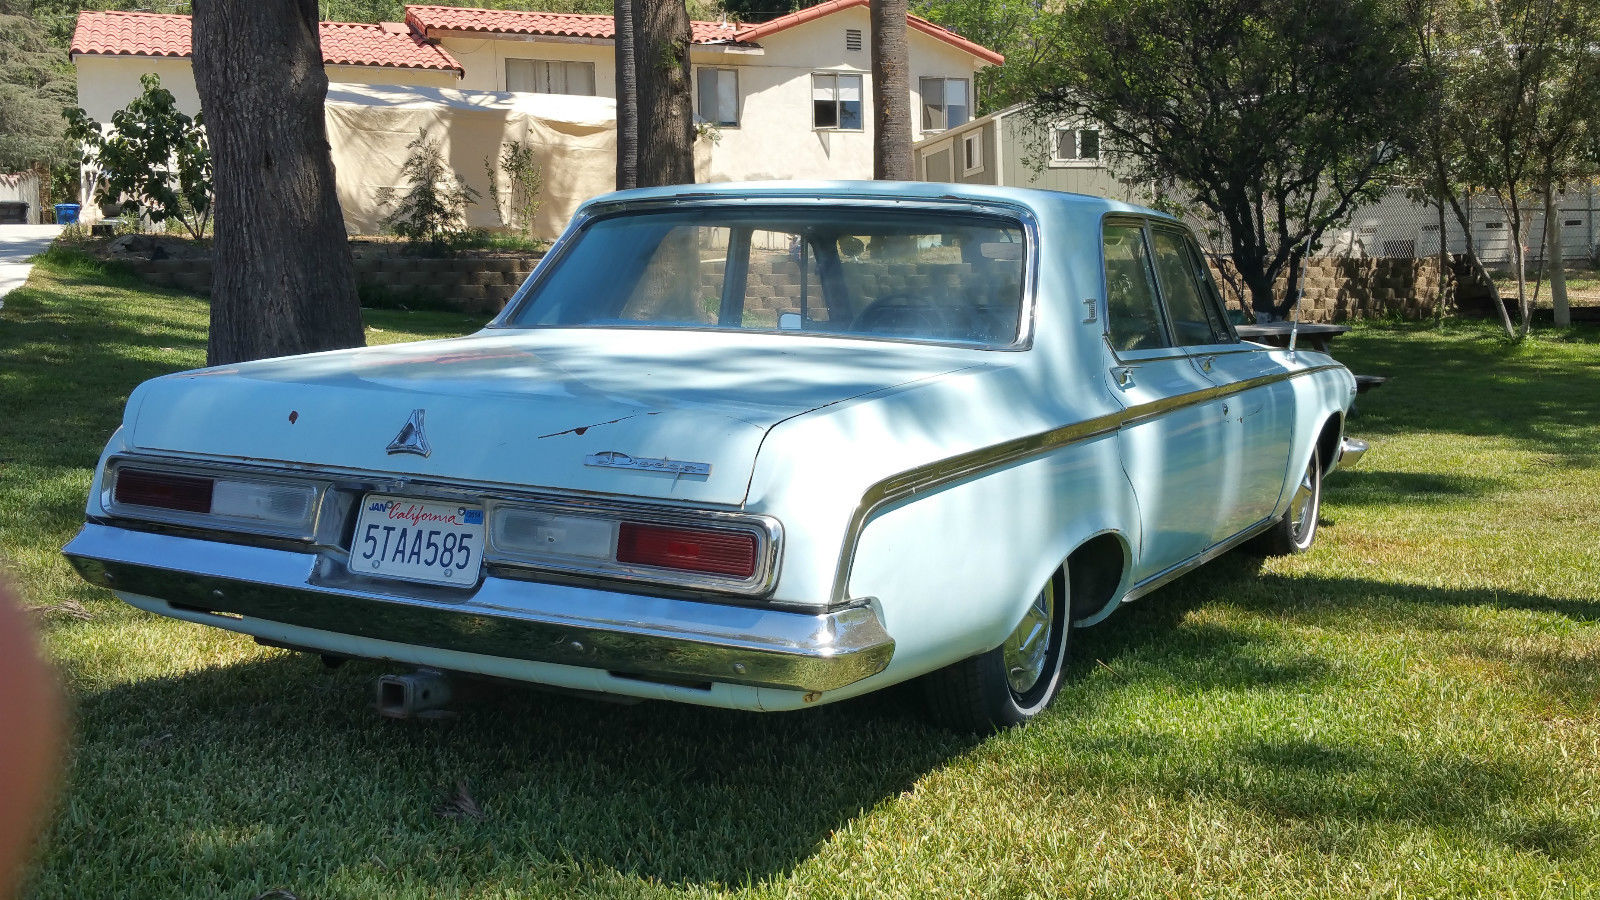 All American Classic Cars 1963 Dodge Polara 4 Door Sedan Hardtop